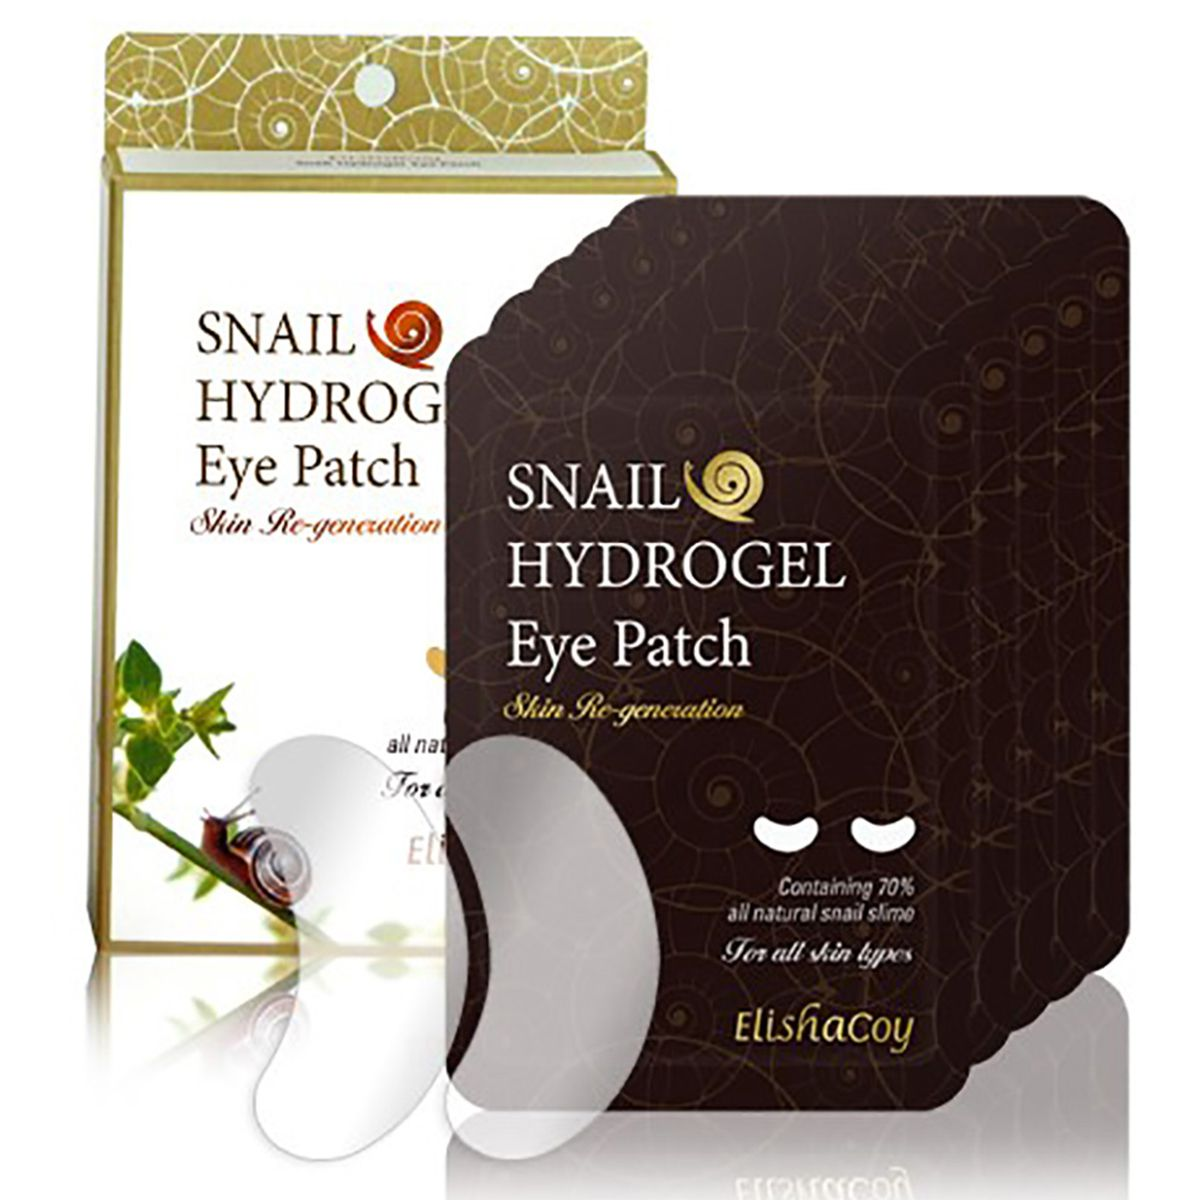 Under-eye masks made with snail slime in their packaging